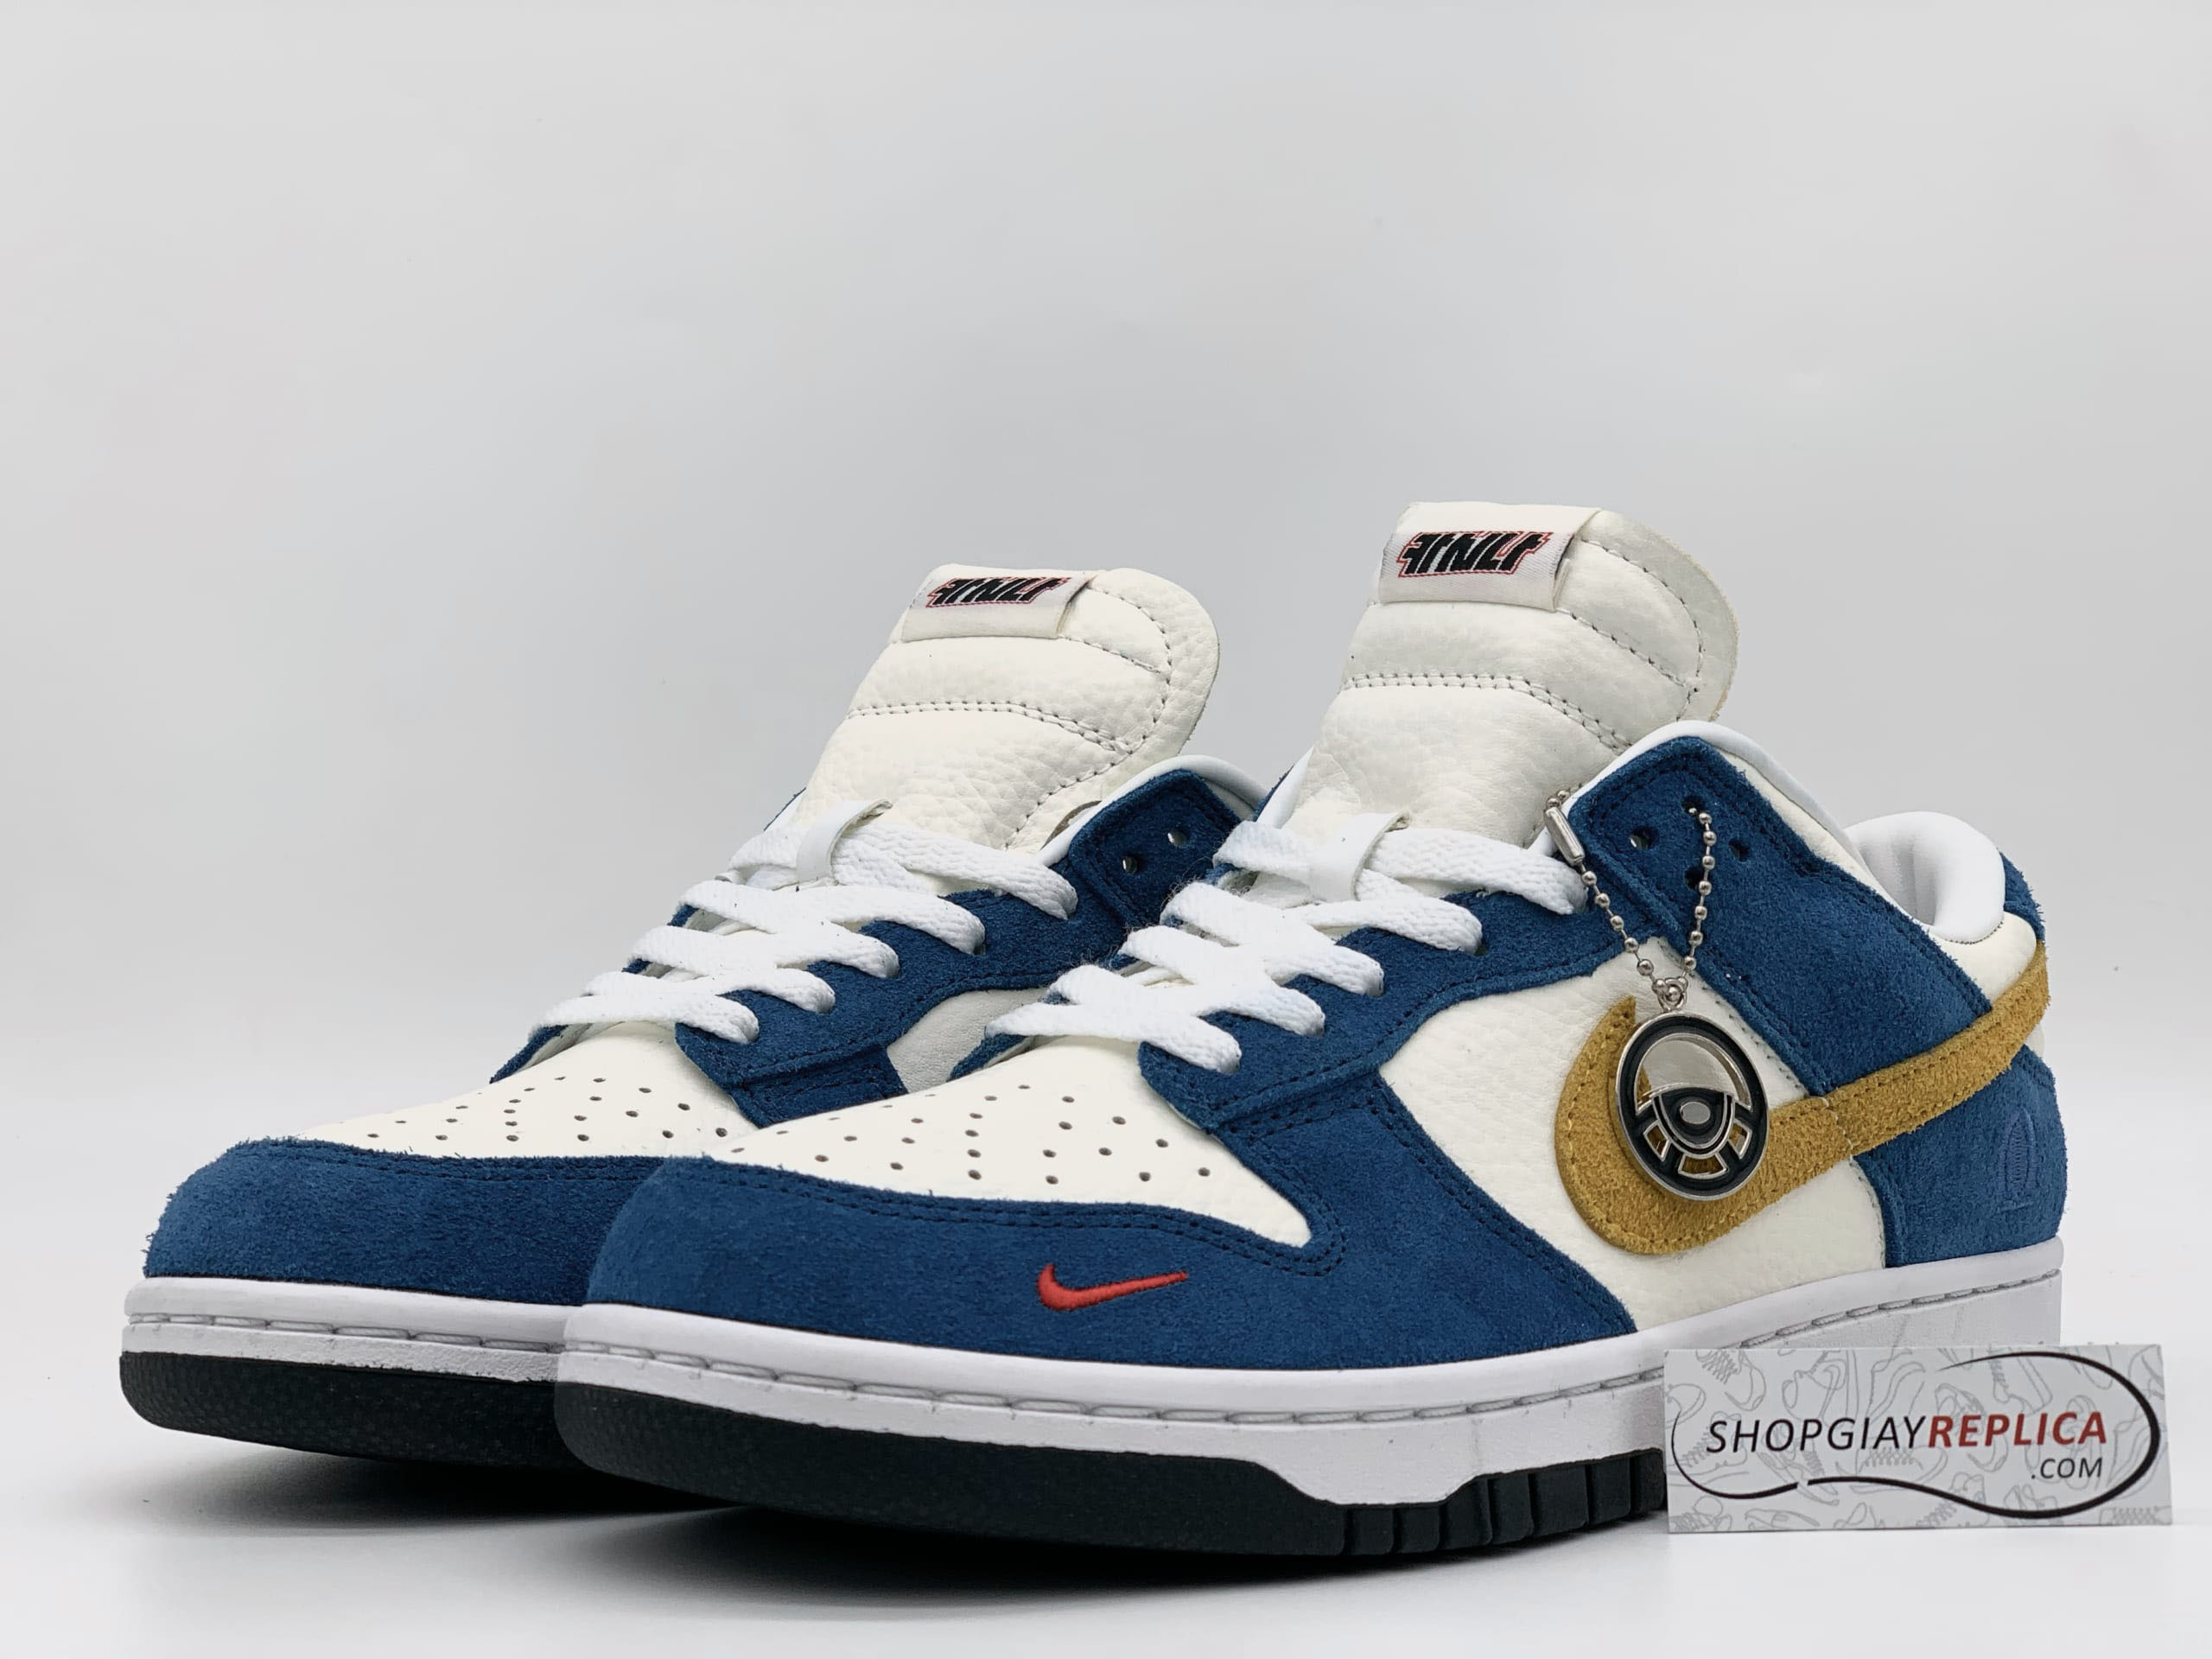 Nike SB Dunk Low Kasina Blue replica